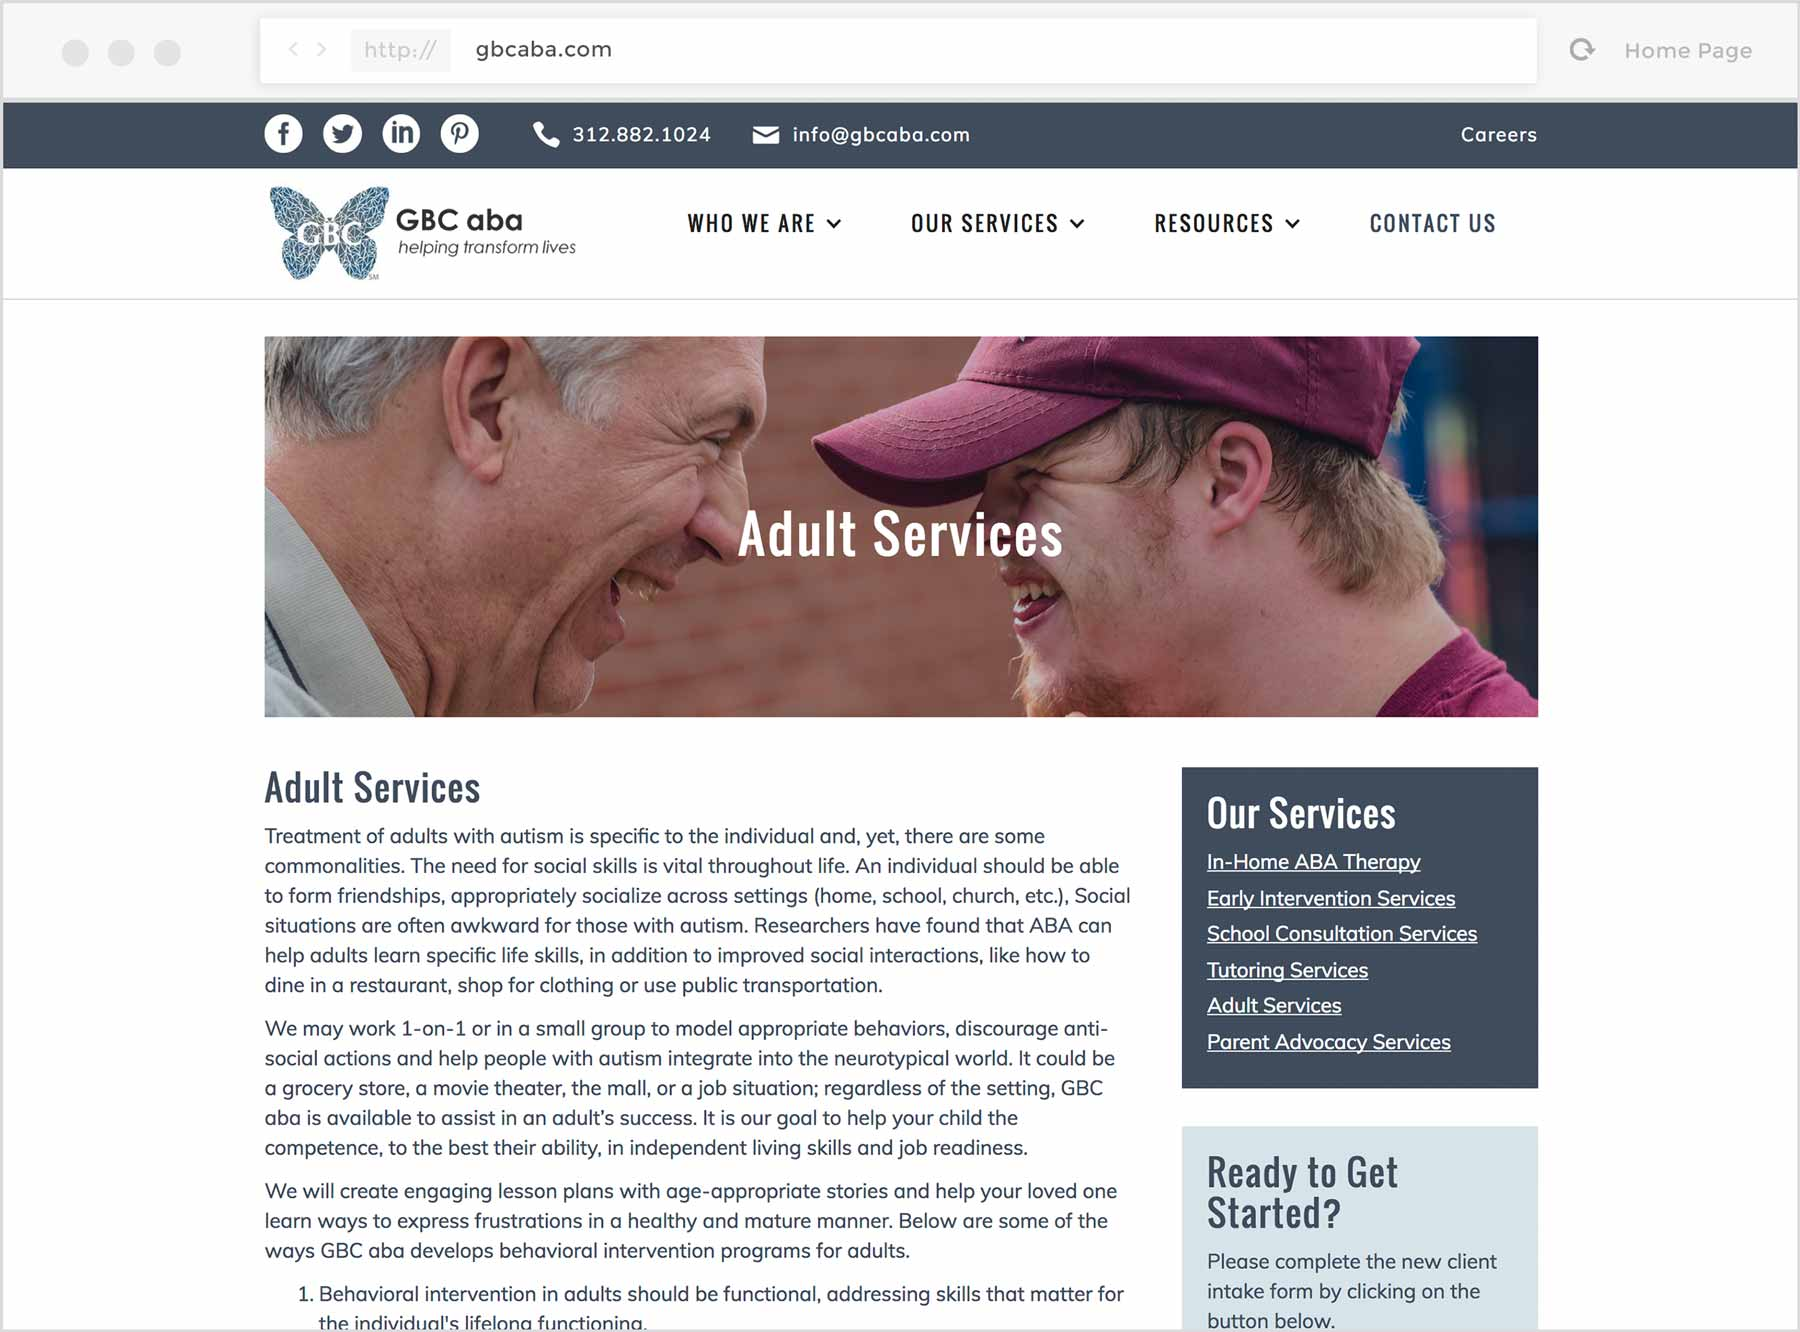 Screenshot of the Adult Services page on the GBCaba website.